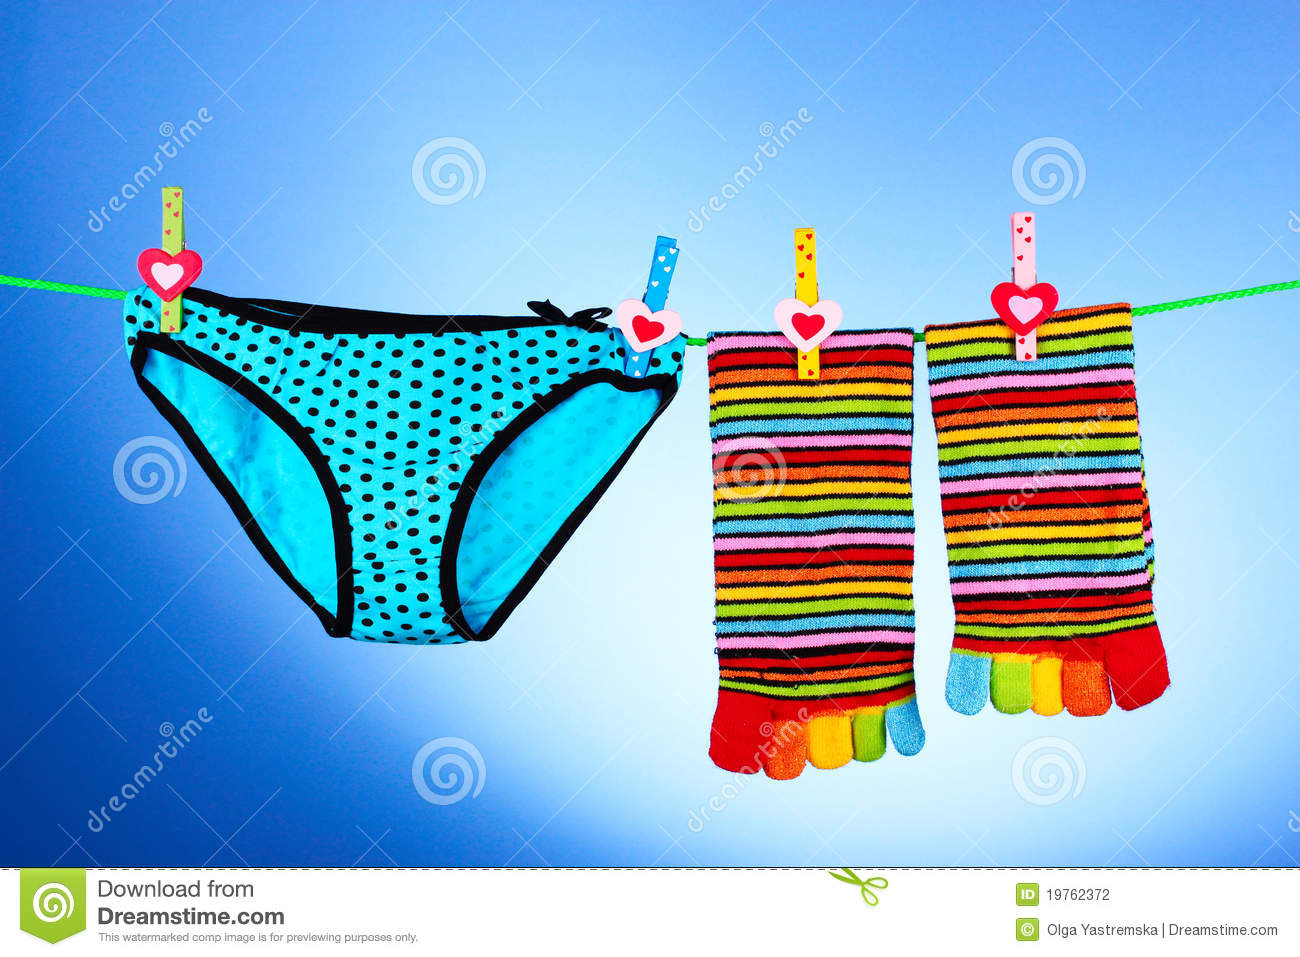 7836be1005d2 Woman's panties hanging stock photo. Image of lingerie - 19762372